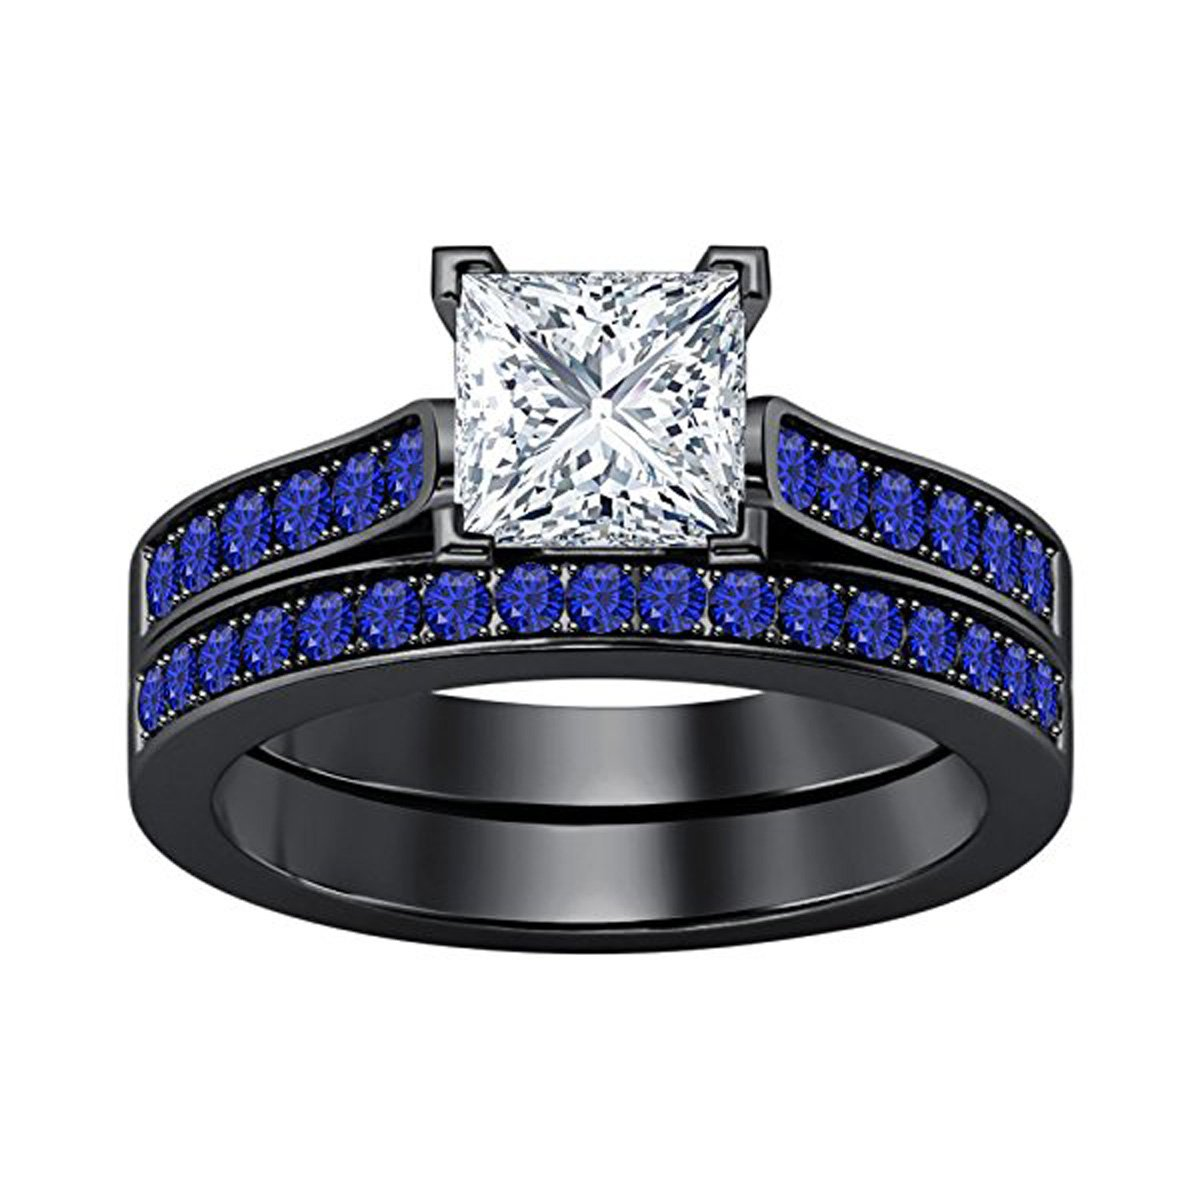 2.75 Ct Princess Cut White CZ & Created Blue Sapphire Wedding Band Engagement Bridal Ring Set Black Rhodium Plated Women's Jewelry by Silver Gems Factory